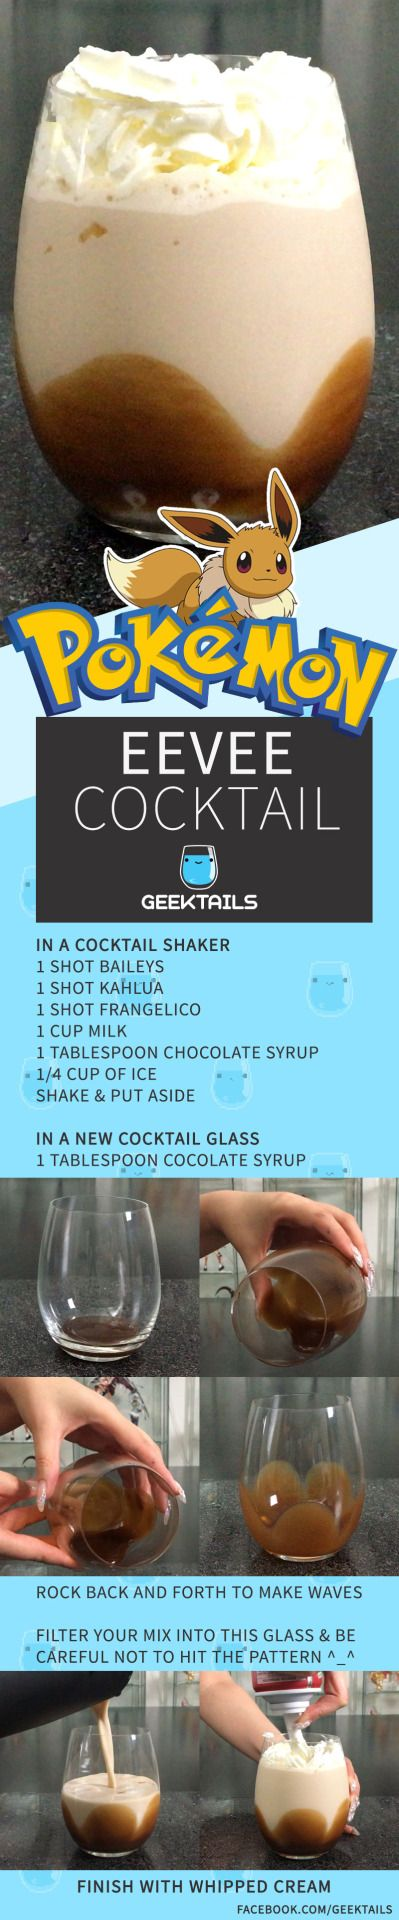 Eevee cocktail from Pokemon! found on www.geektails.com/ #cocktail #gaming cocktail #pokemon cocktail #pokemon #eevee #eeveelution #eeveelution cocktails